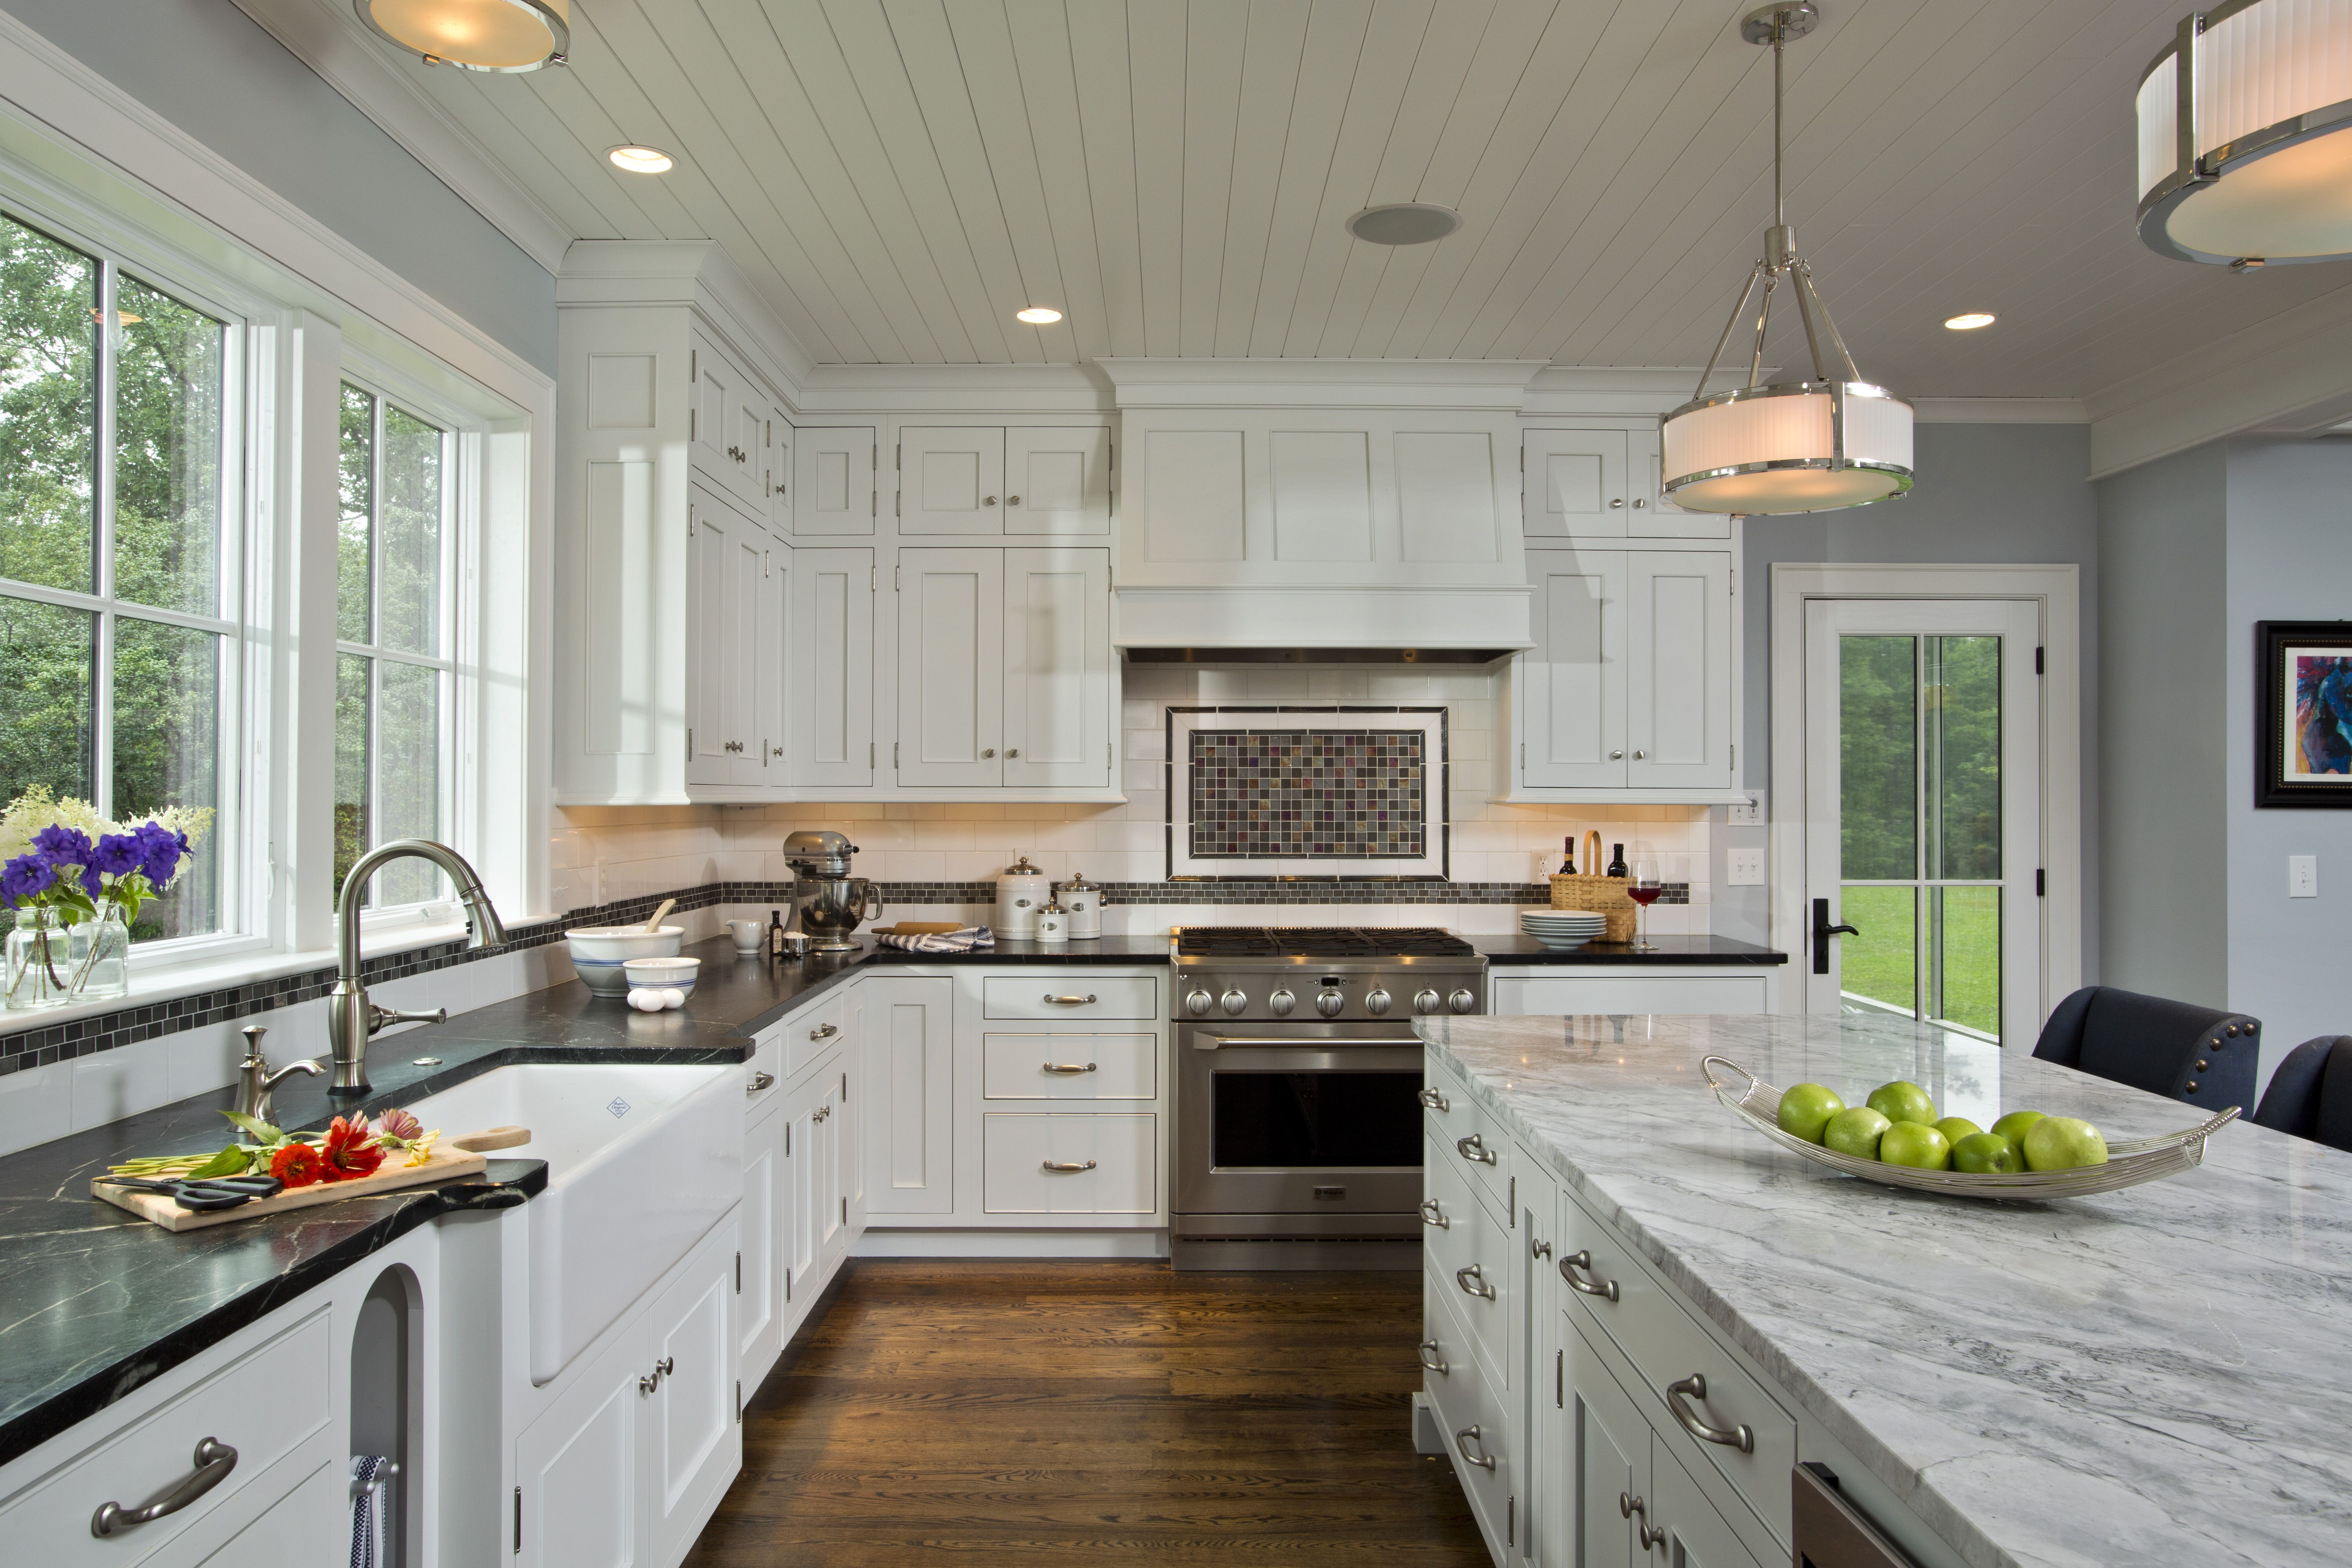 White Beadboard Kitchen Cabinets Inset Custom Cabinets Bead Board Ceiling And A Granite